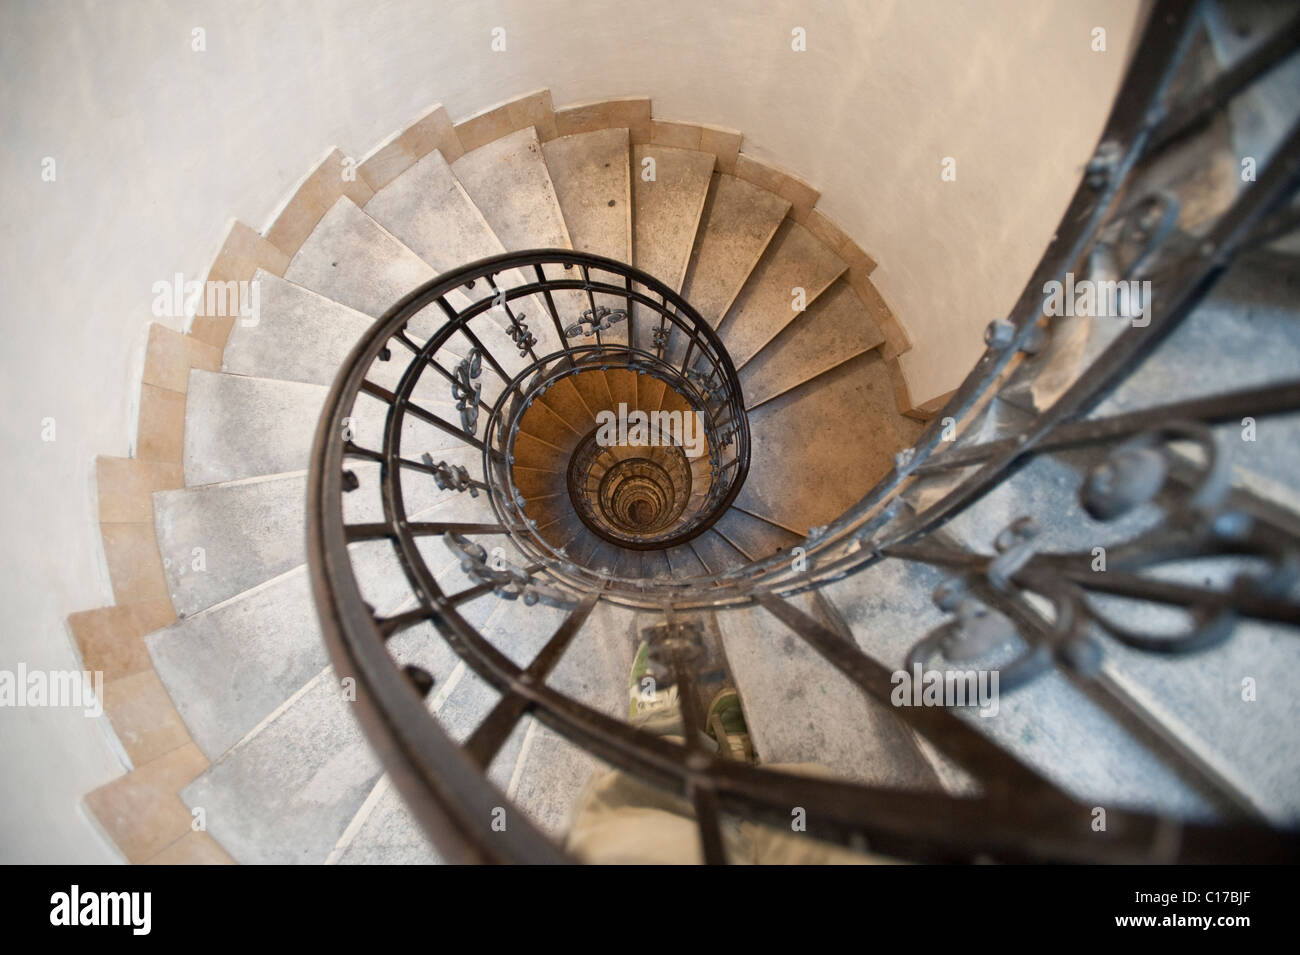 Wide Angle Spiral Staircase   Stock Image